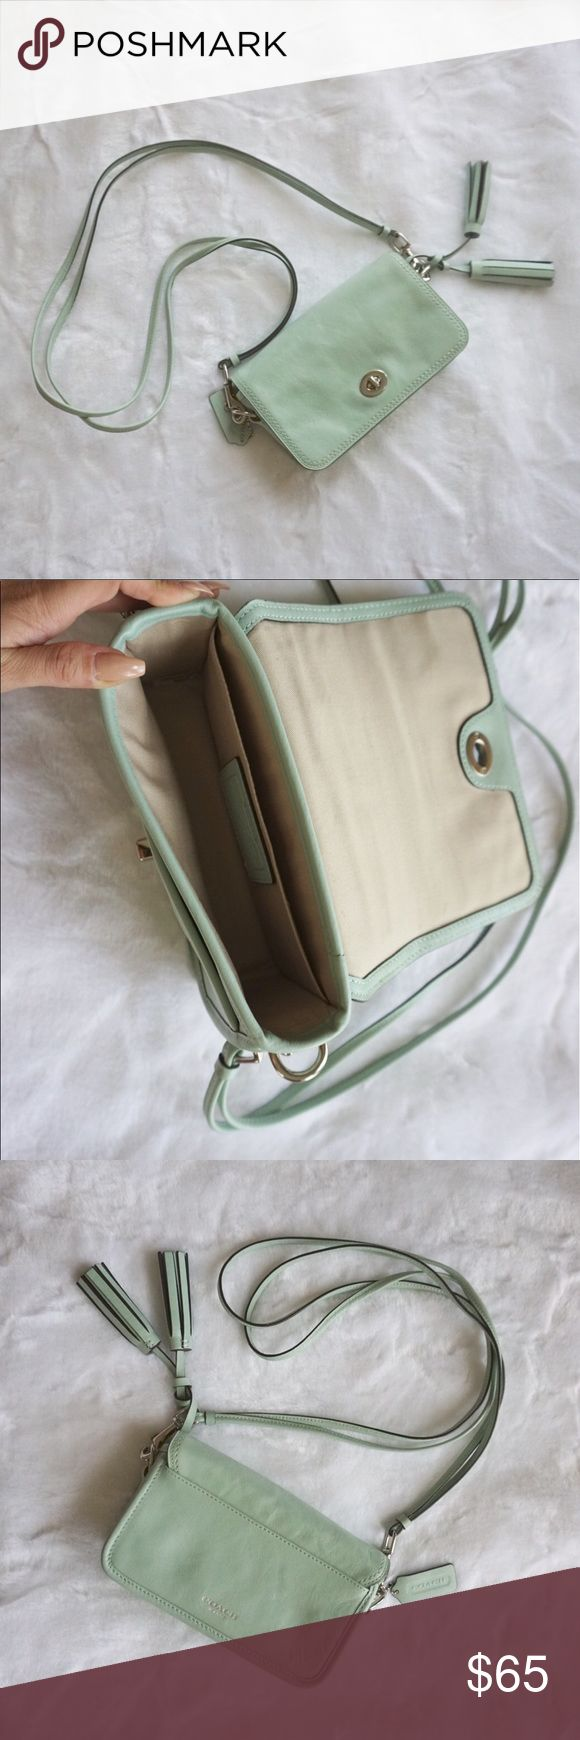 Coach Legacy Collection Crossbody Bag Coach Crossbody bag in mint. Approx 8x4.5x2 with a 21 inch shoulder drop. Great condition. Really pretty bag but I just don't get much use out of it. Just the bag, doesn't come with dust bag. Coach Bags Crossbody Bags